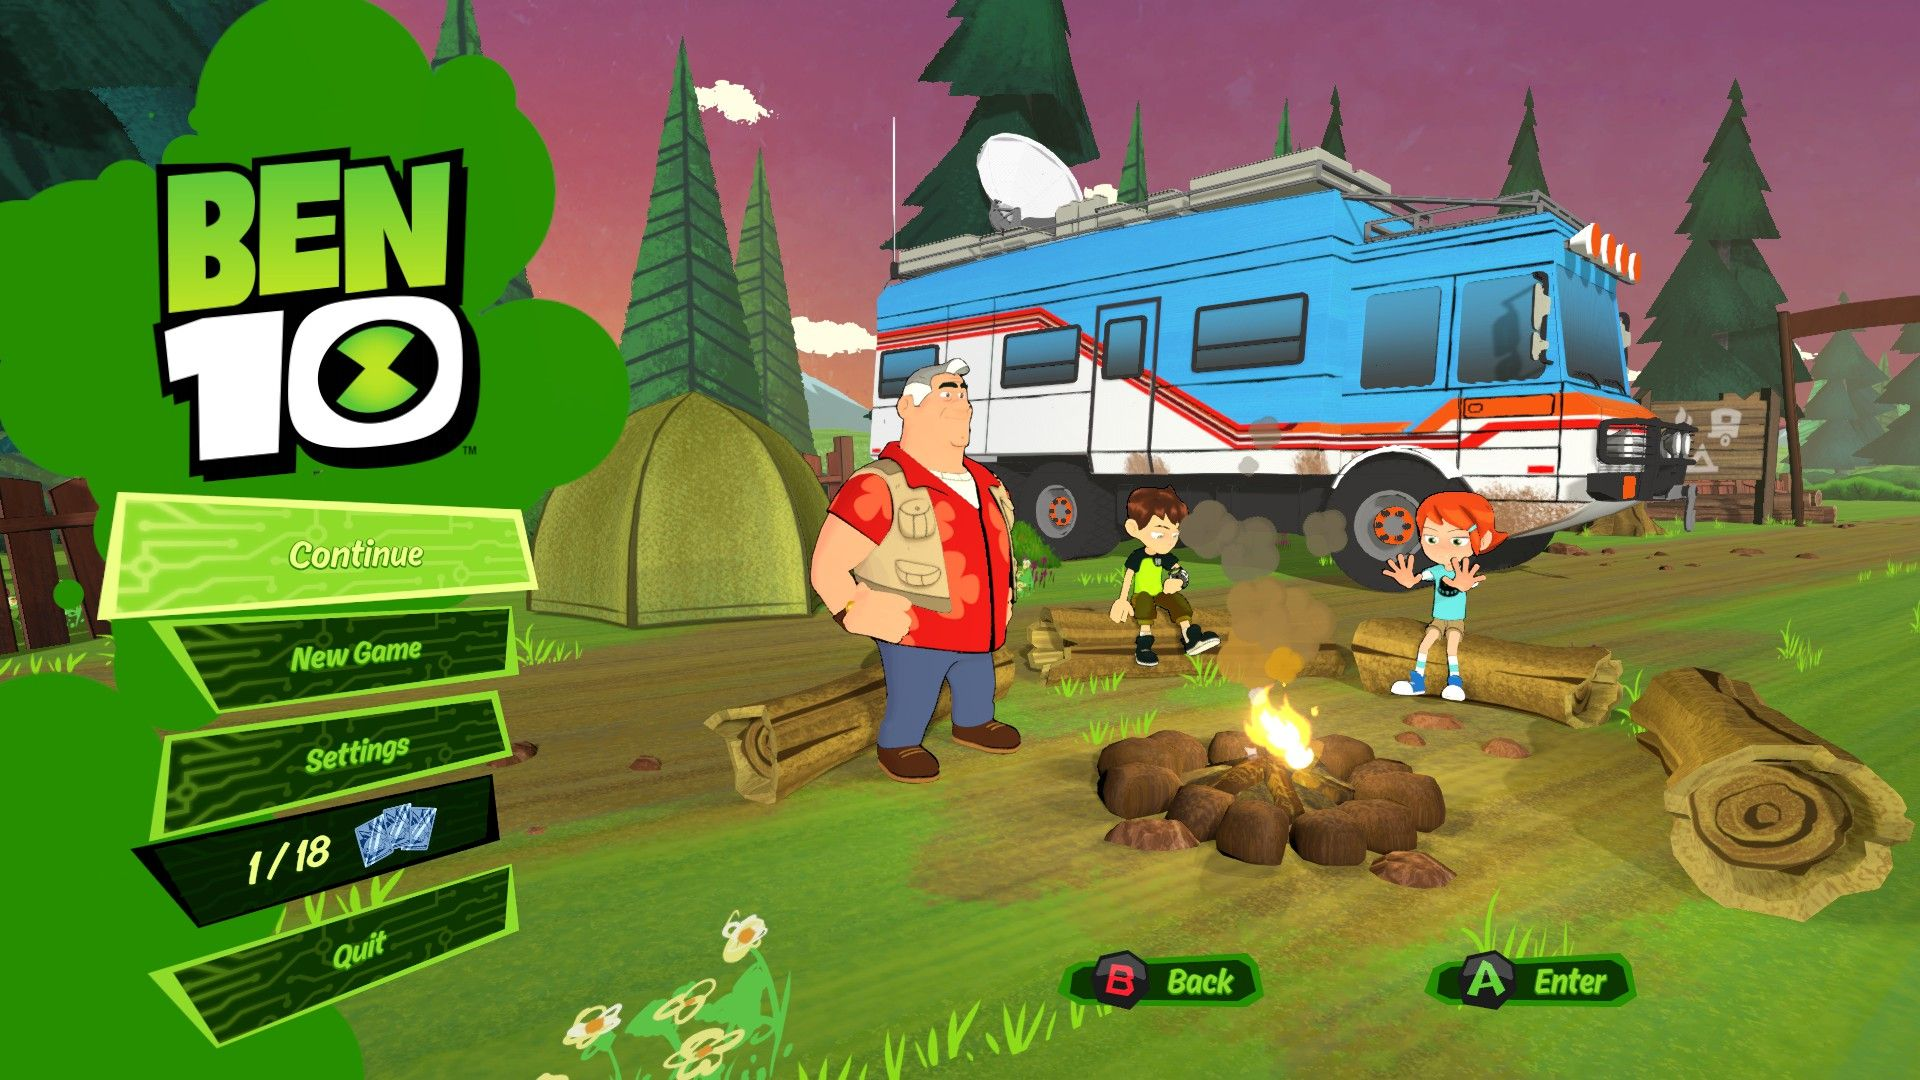 Pin On Ben 10 Official Video Game